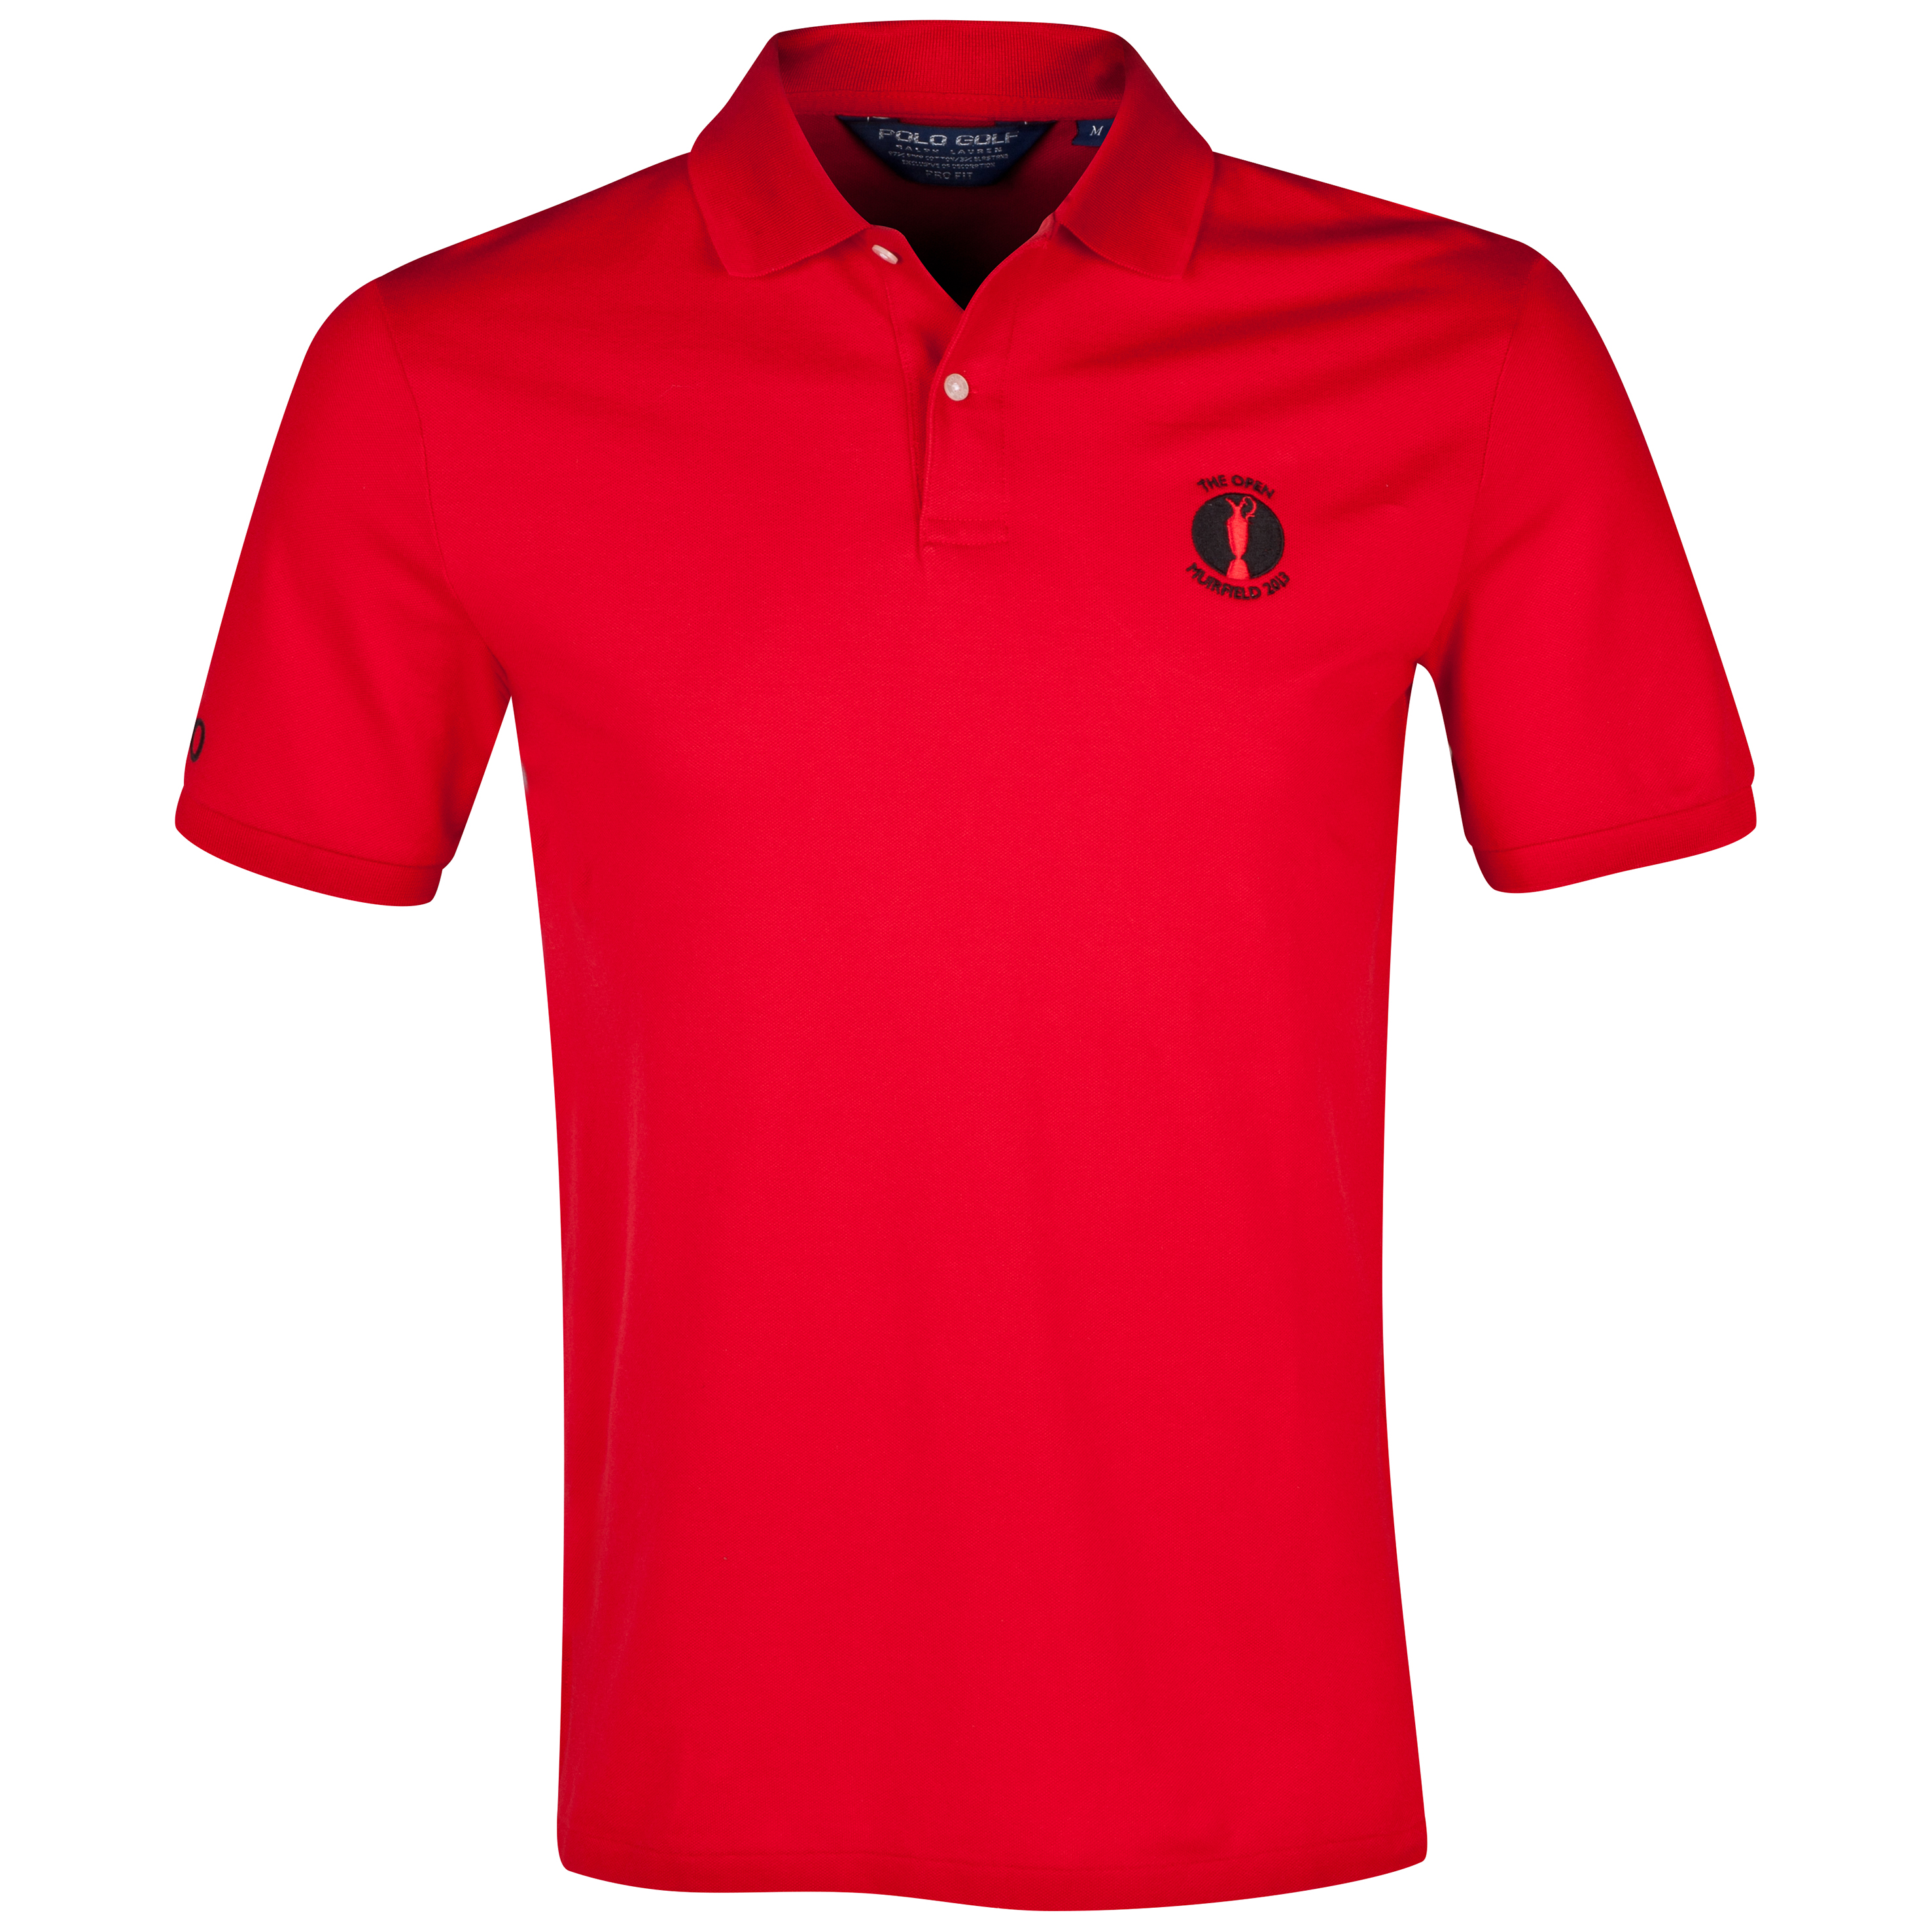 The Open Championship 2013 Muirfield Polo Ralph Lauren Solid Polo Red